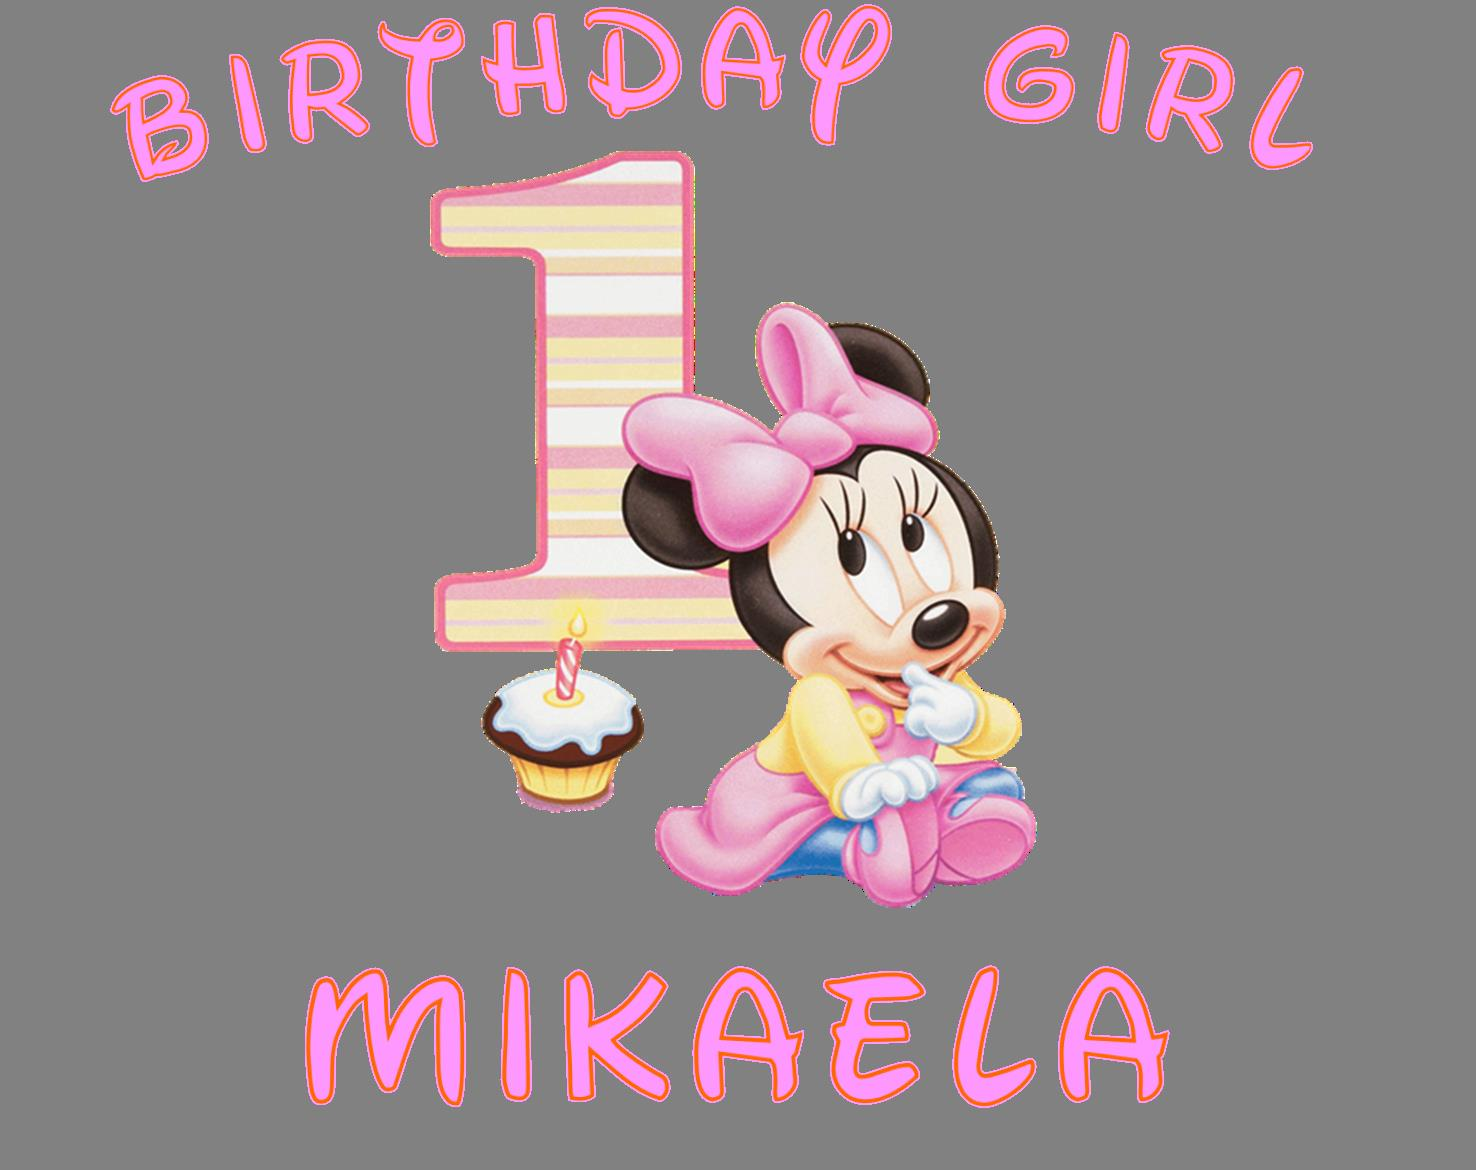 baby's first birthday clipart ; baby-minnie-mouse-1st-birthday-clipart-6